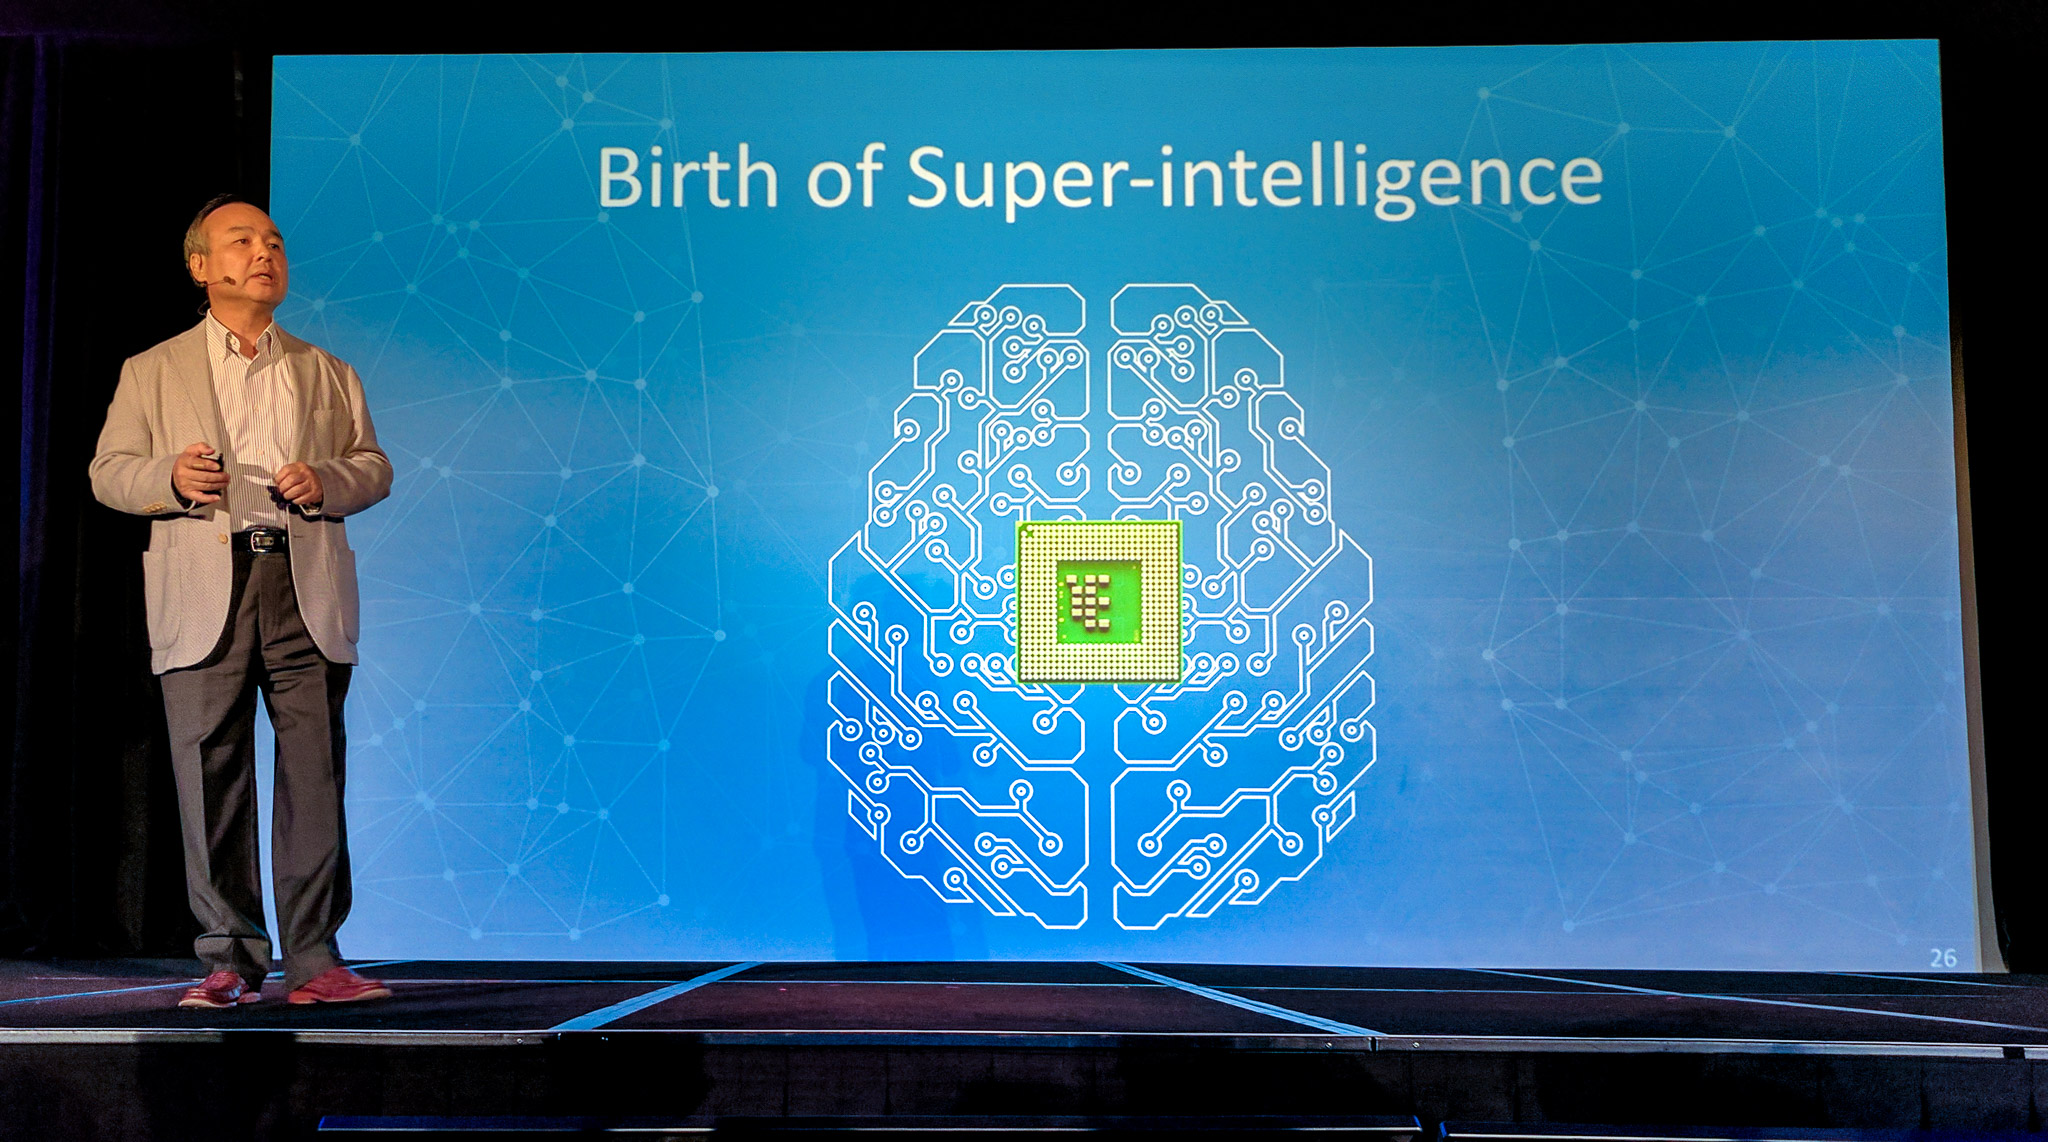 Masayoshi Son predicts superintelligence